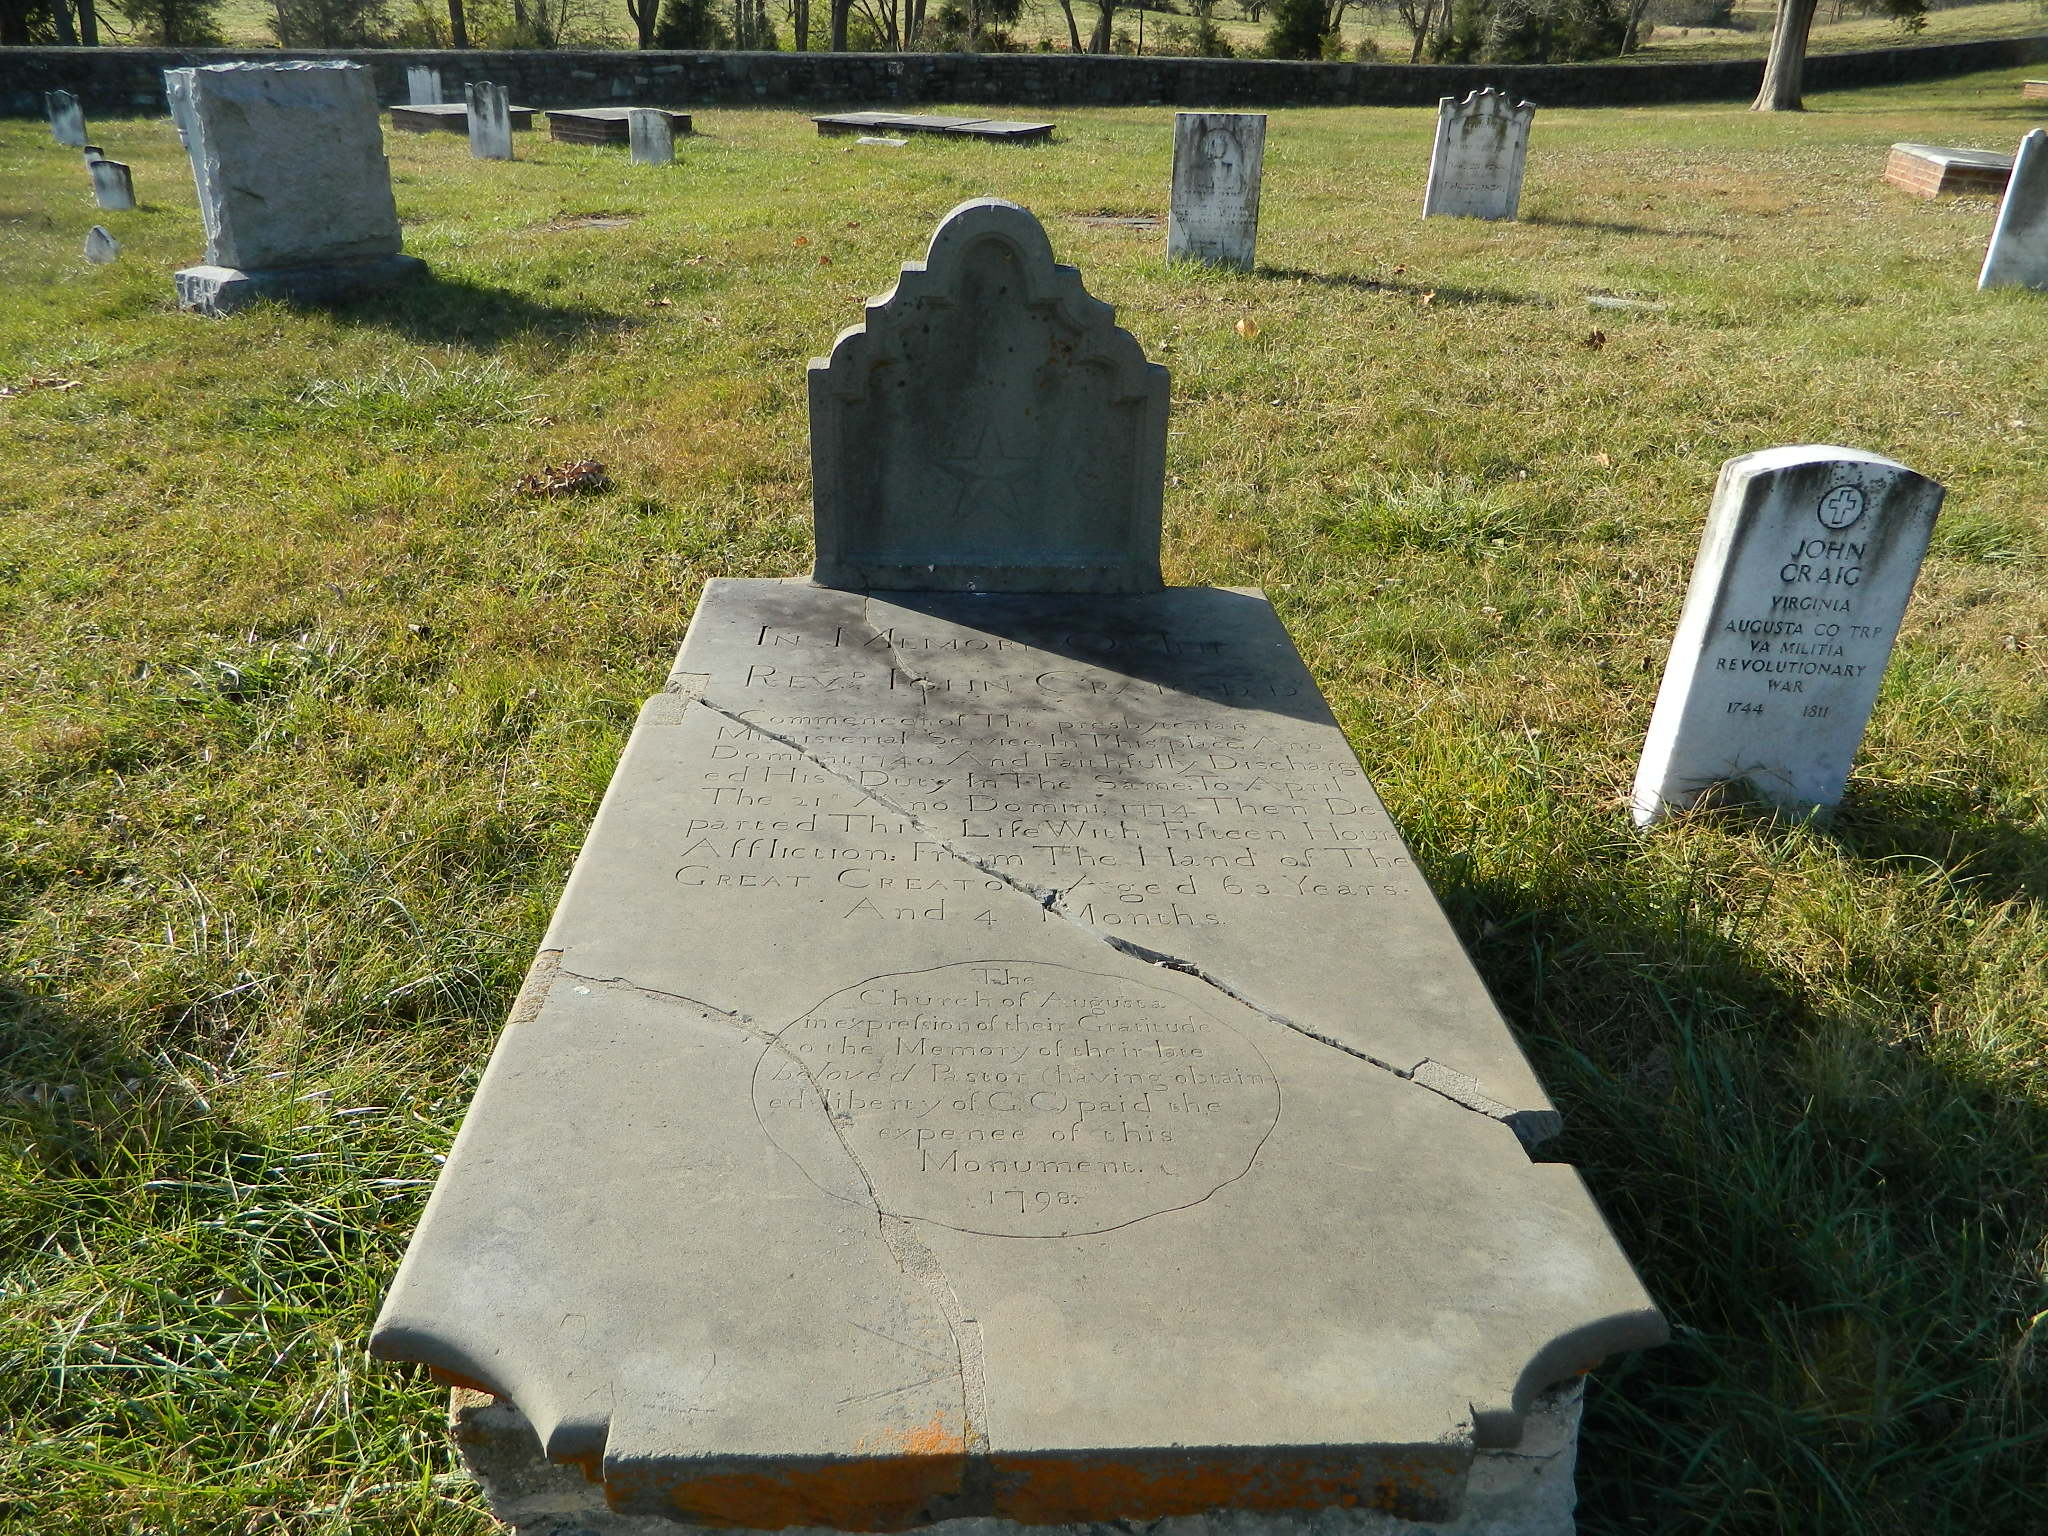 John Craig is buried at the Augusta Stone Presbyterian Church, Cemetery, Fort Defiance, Virginia.